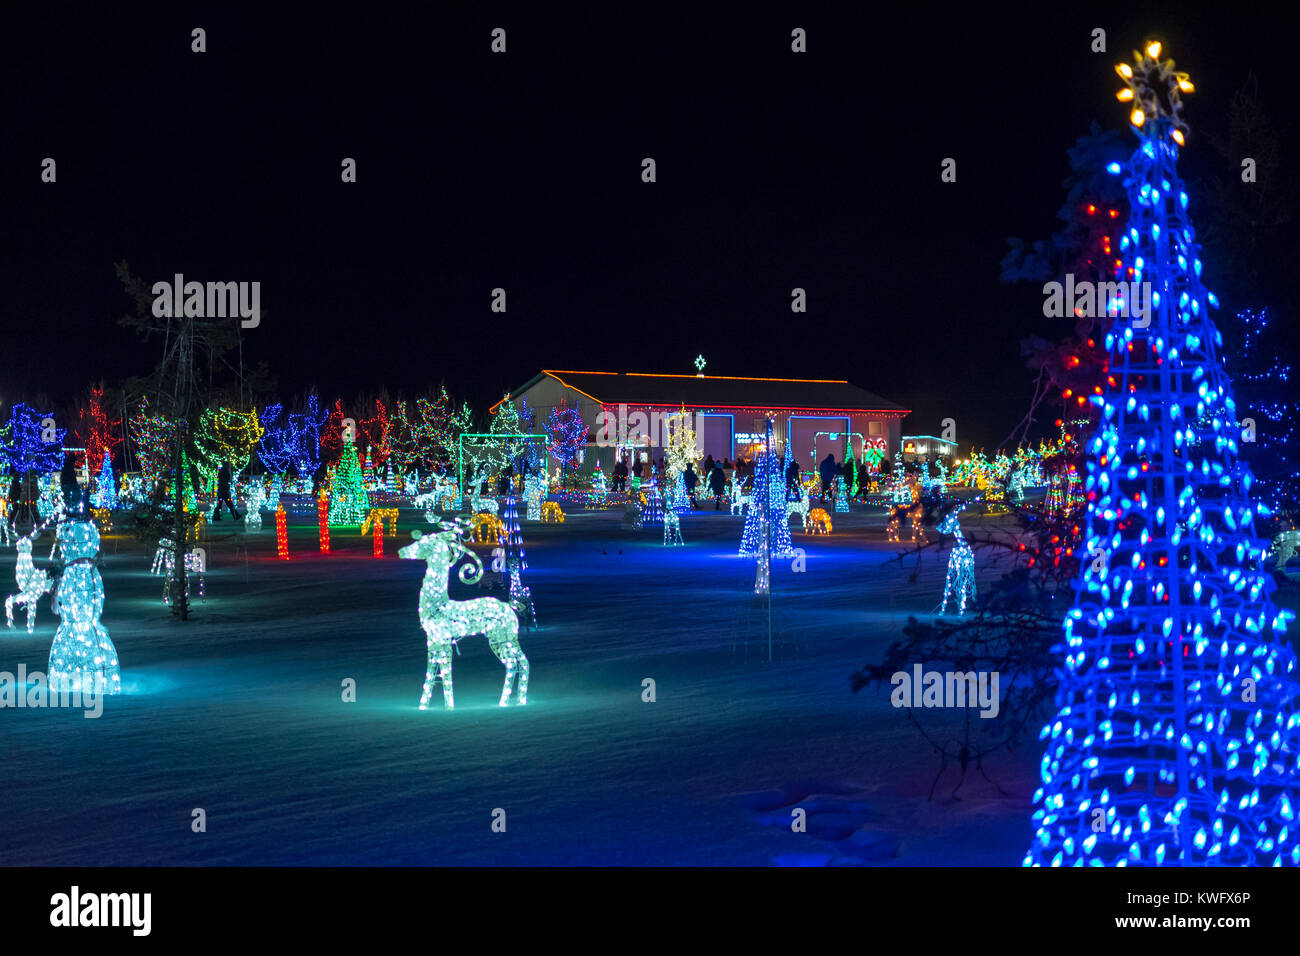 A view of the Leduc Country Lights, a brilliant Christmas lights display, in Leduc County, Alberta, Canada. - Stock Image